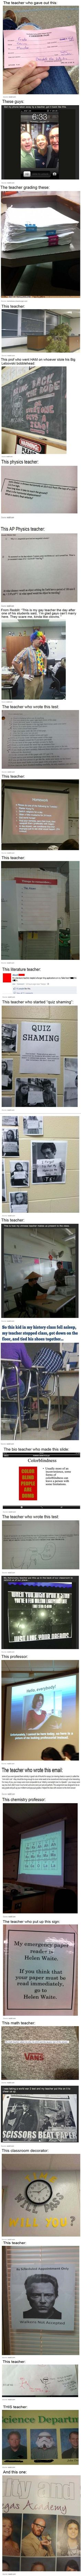 Haha, the teachers who got the last laugh.